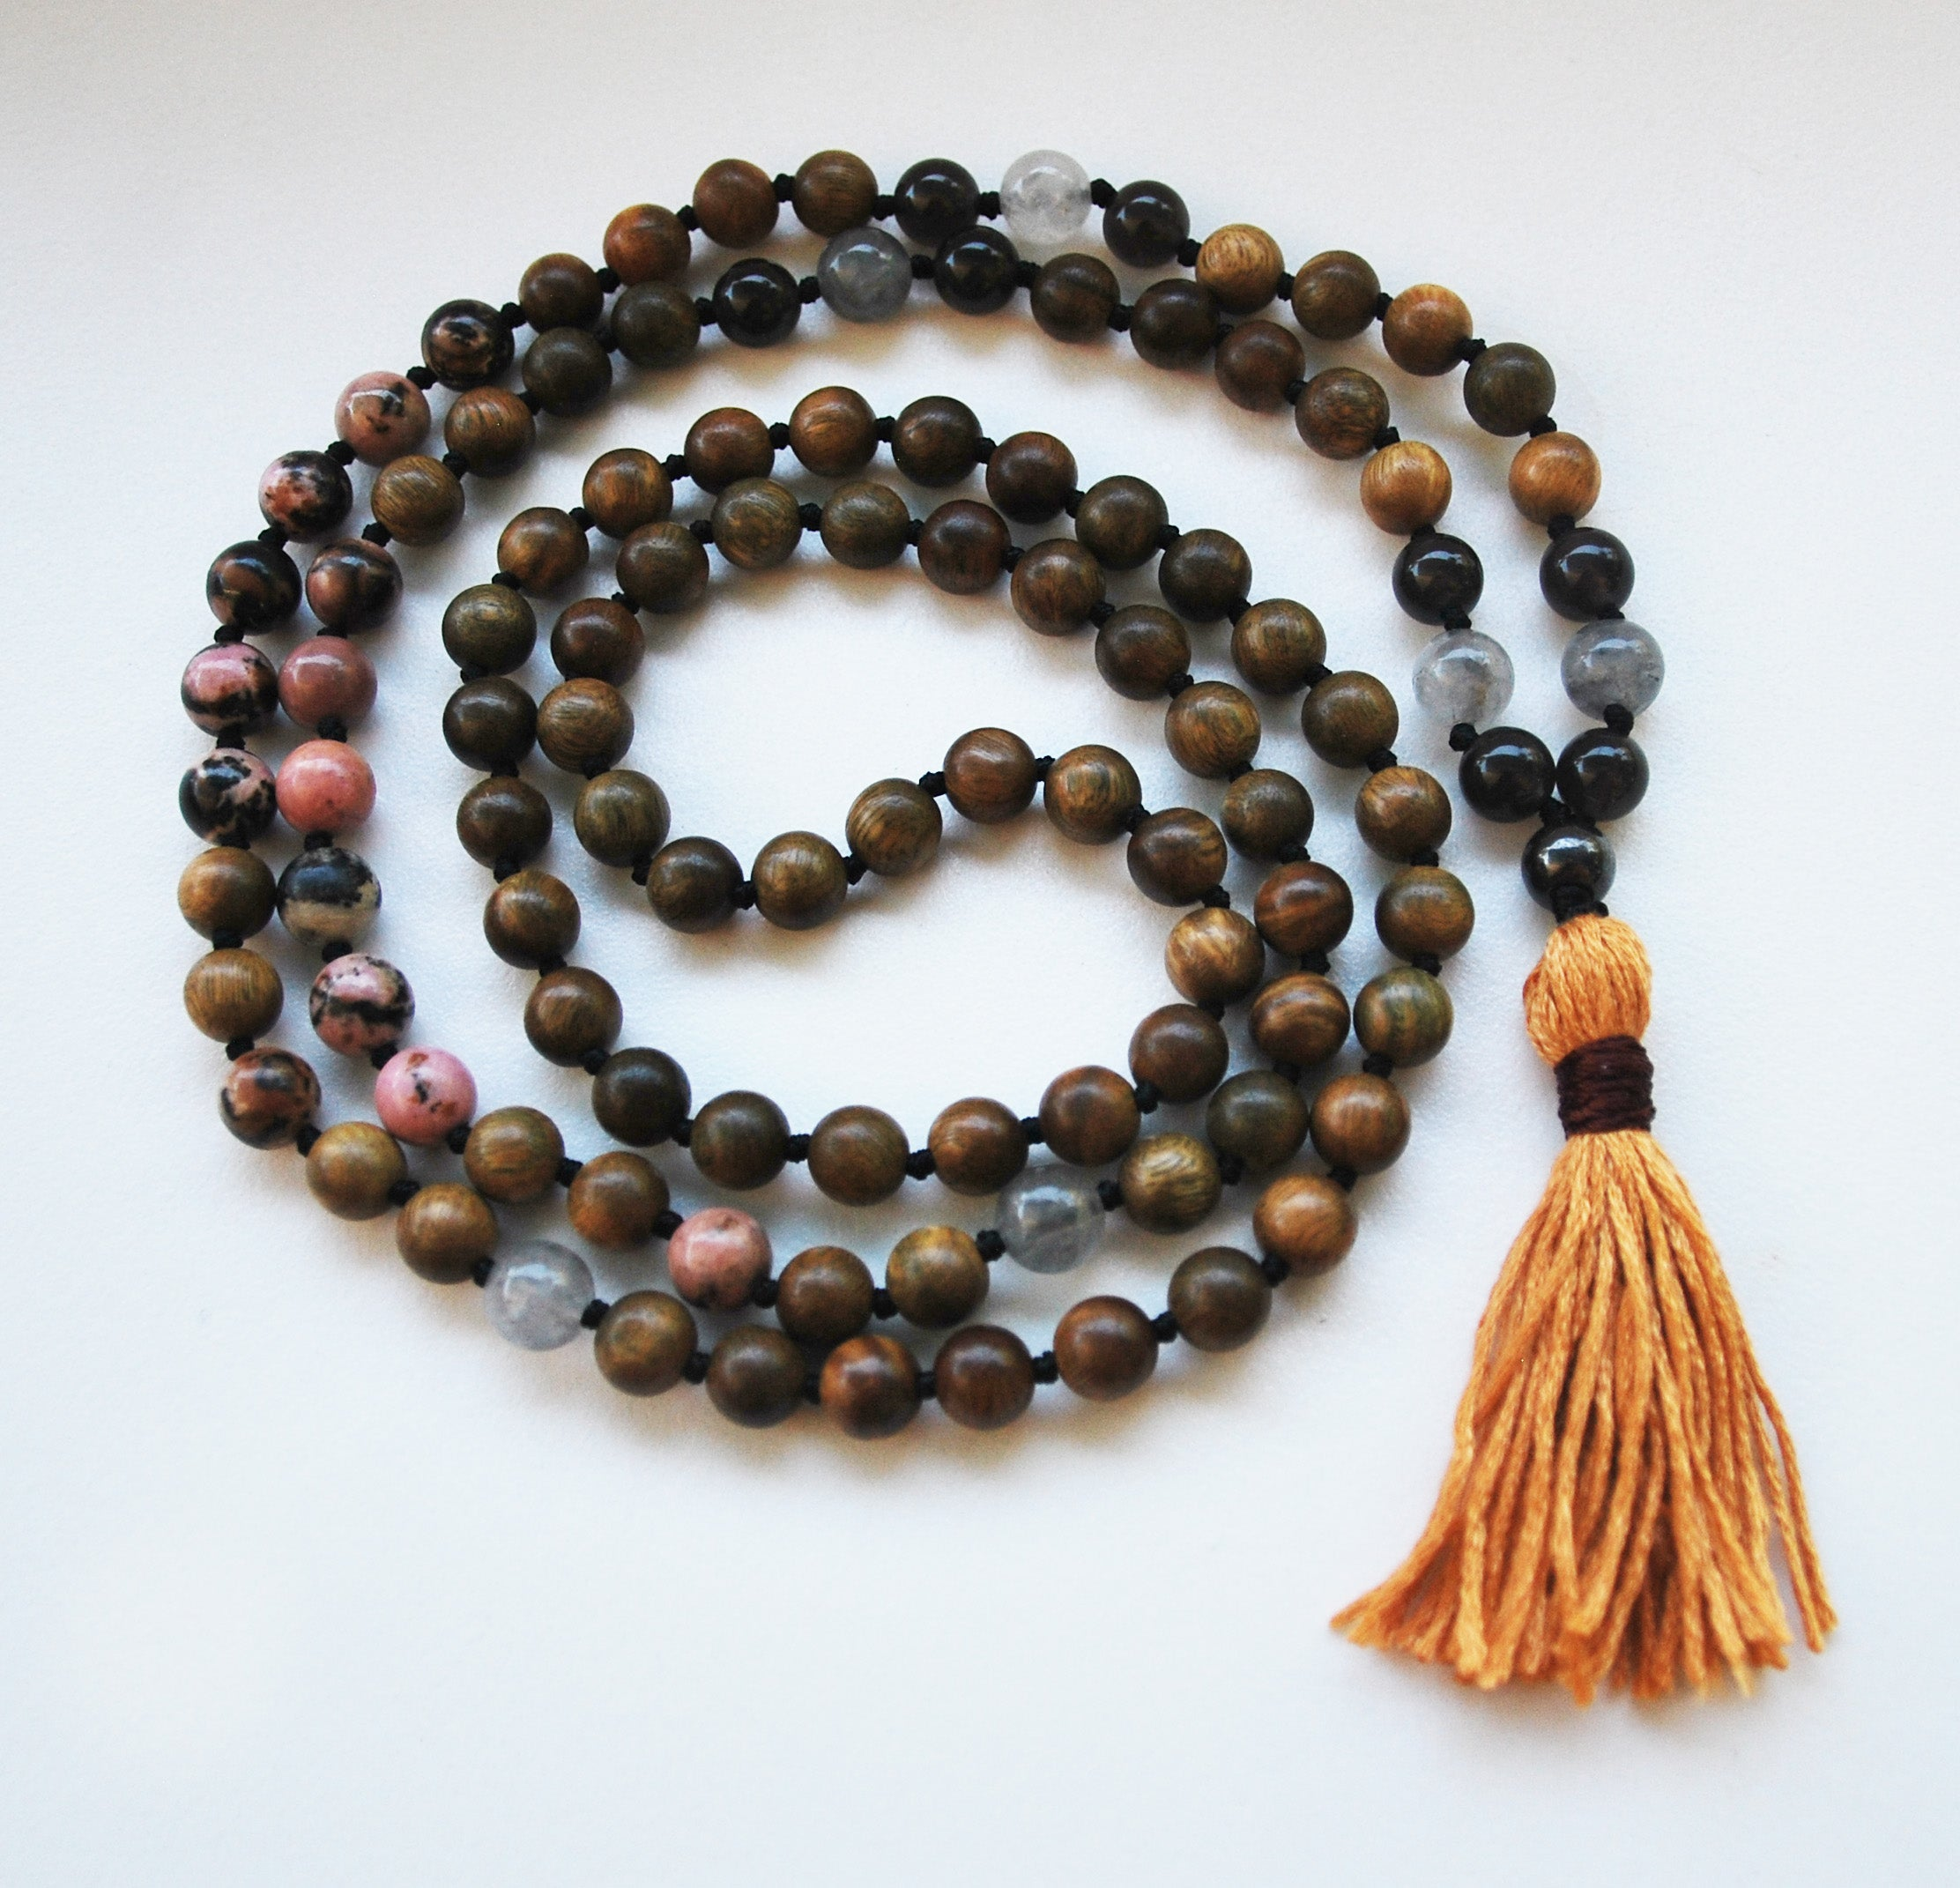 8mm Green Sandalwood & Rhodonite 108 Knotted Mala Necklace with Cotton Tassel